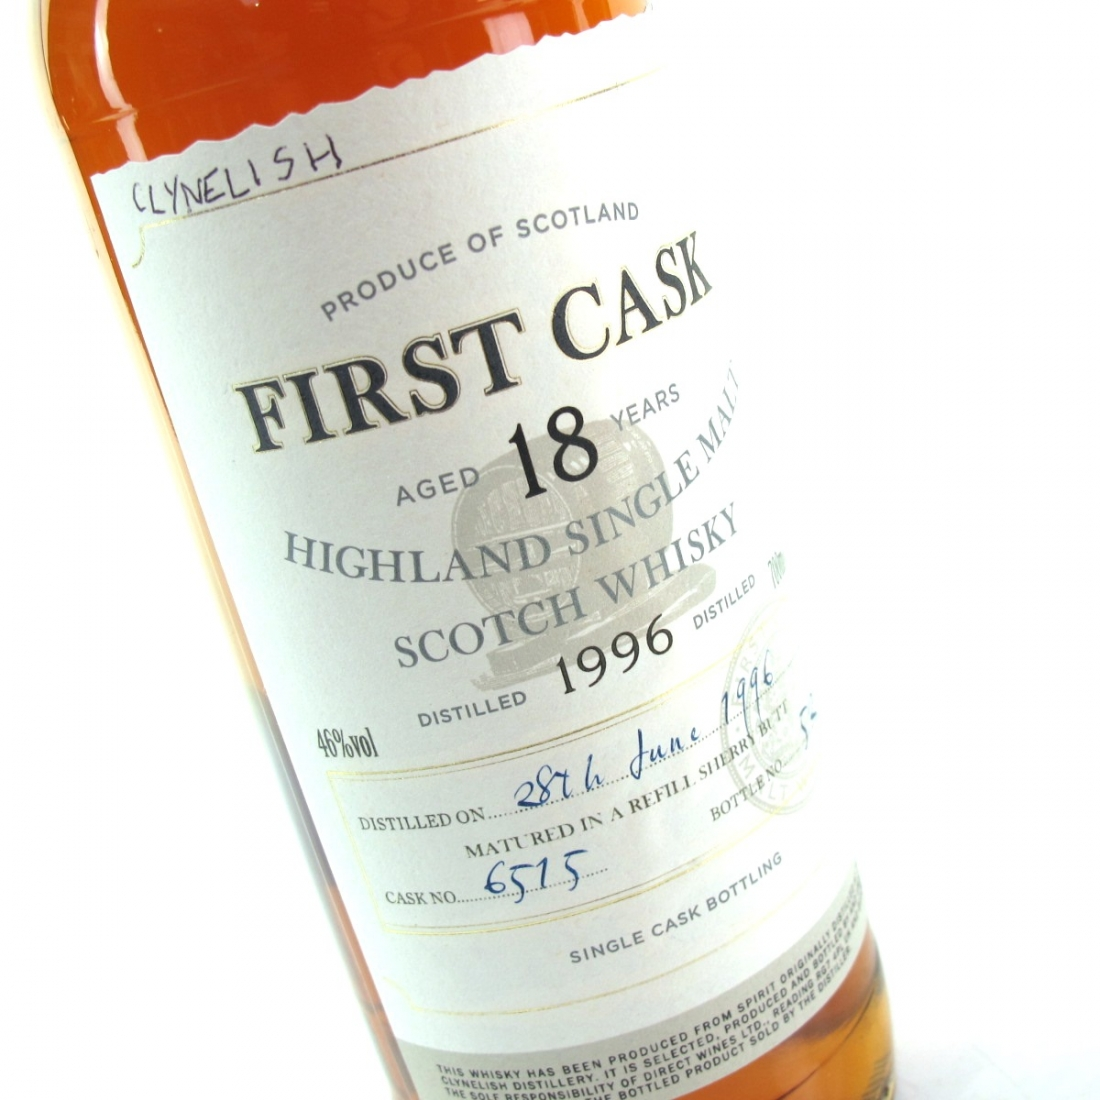 Clynelish 1996 First Cask 18 Year Old